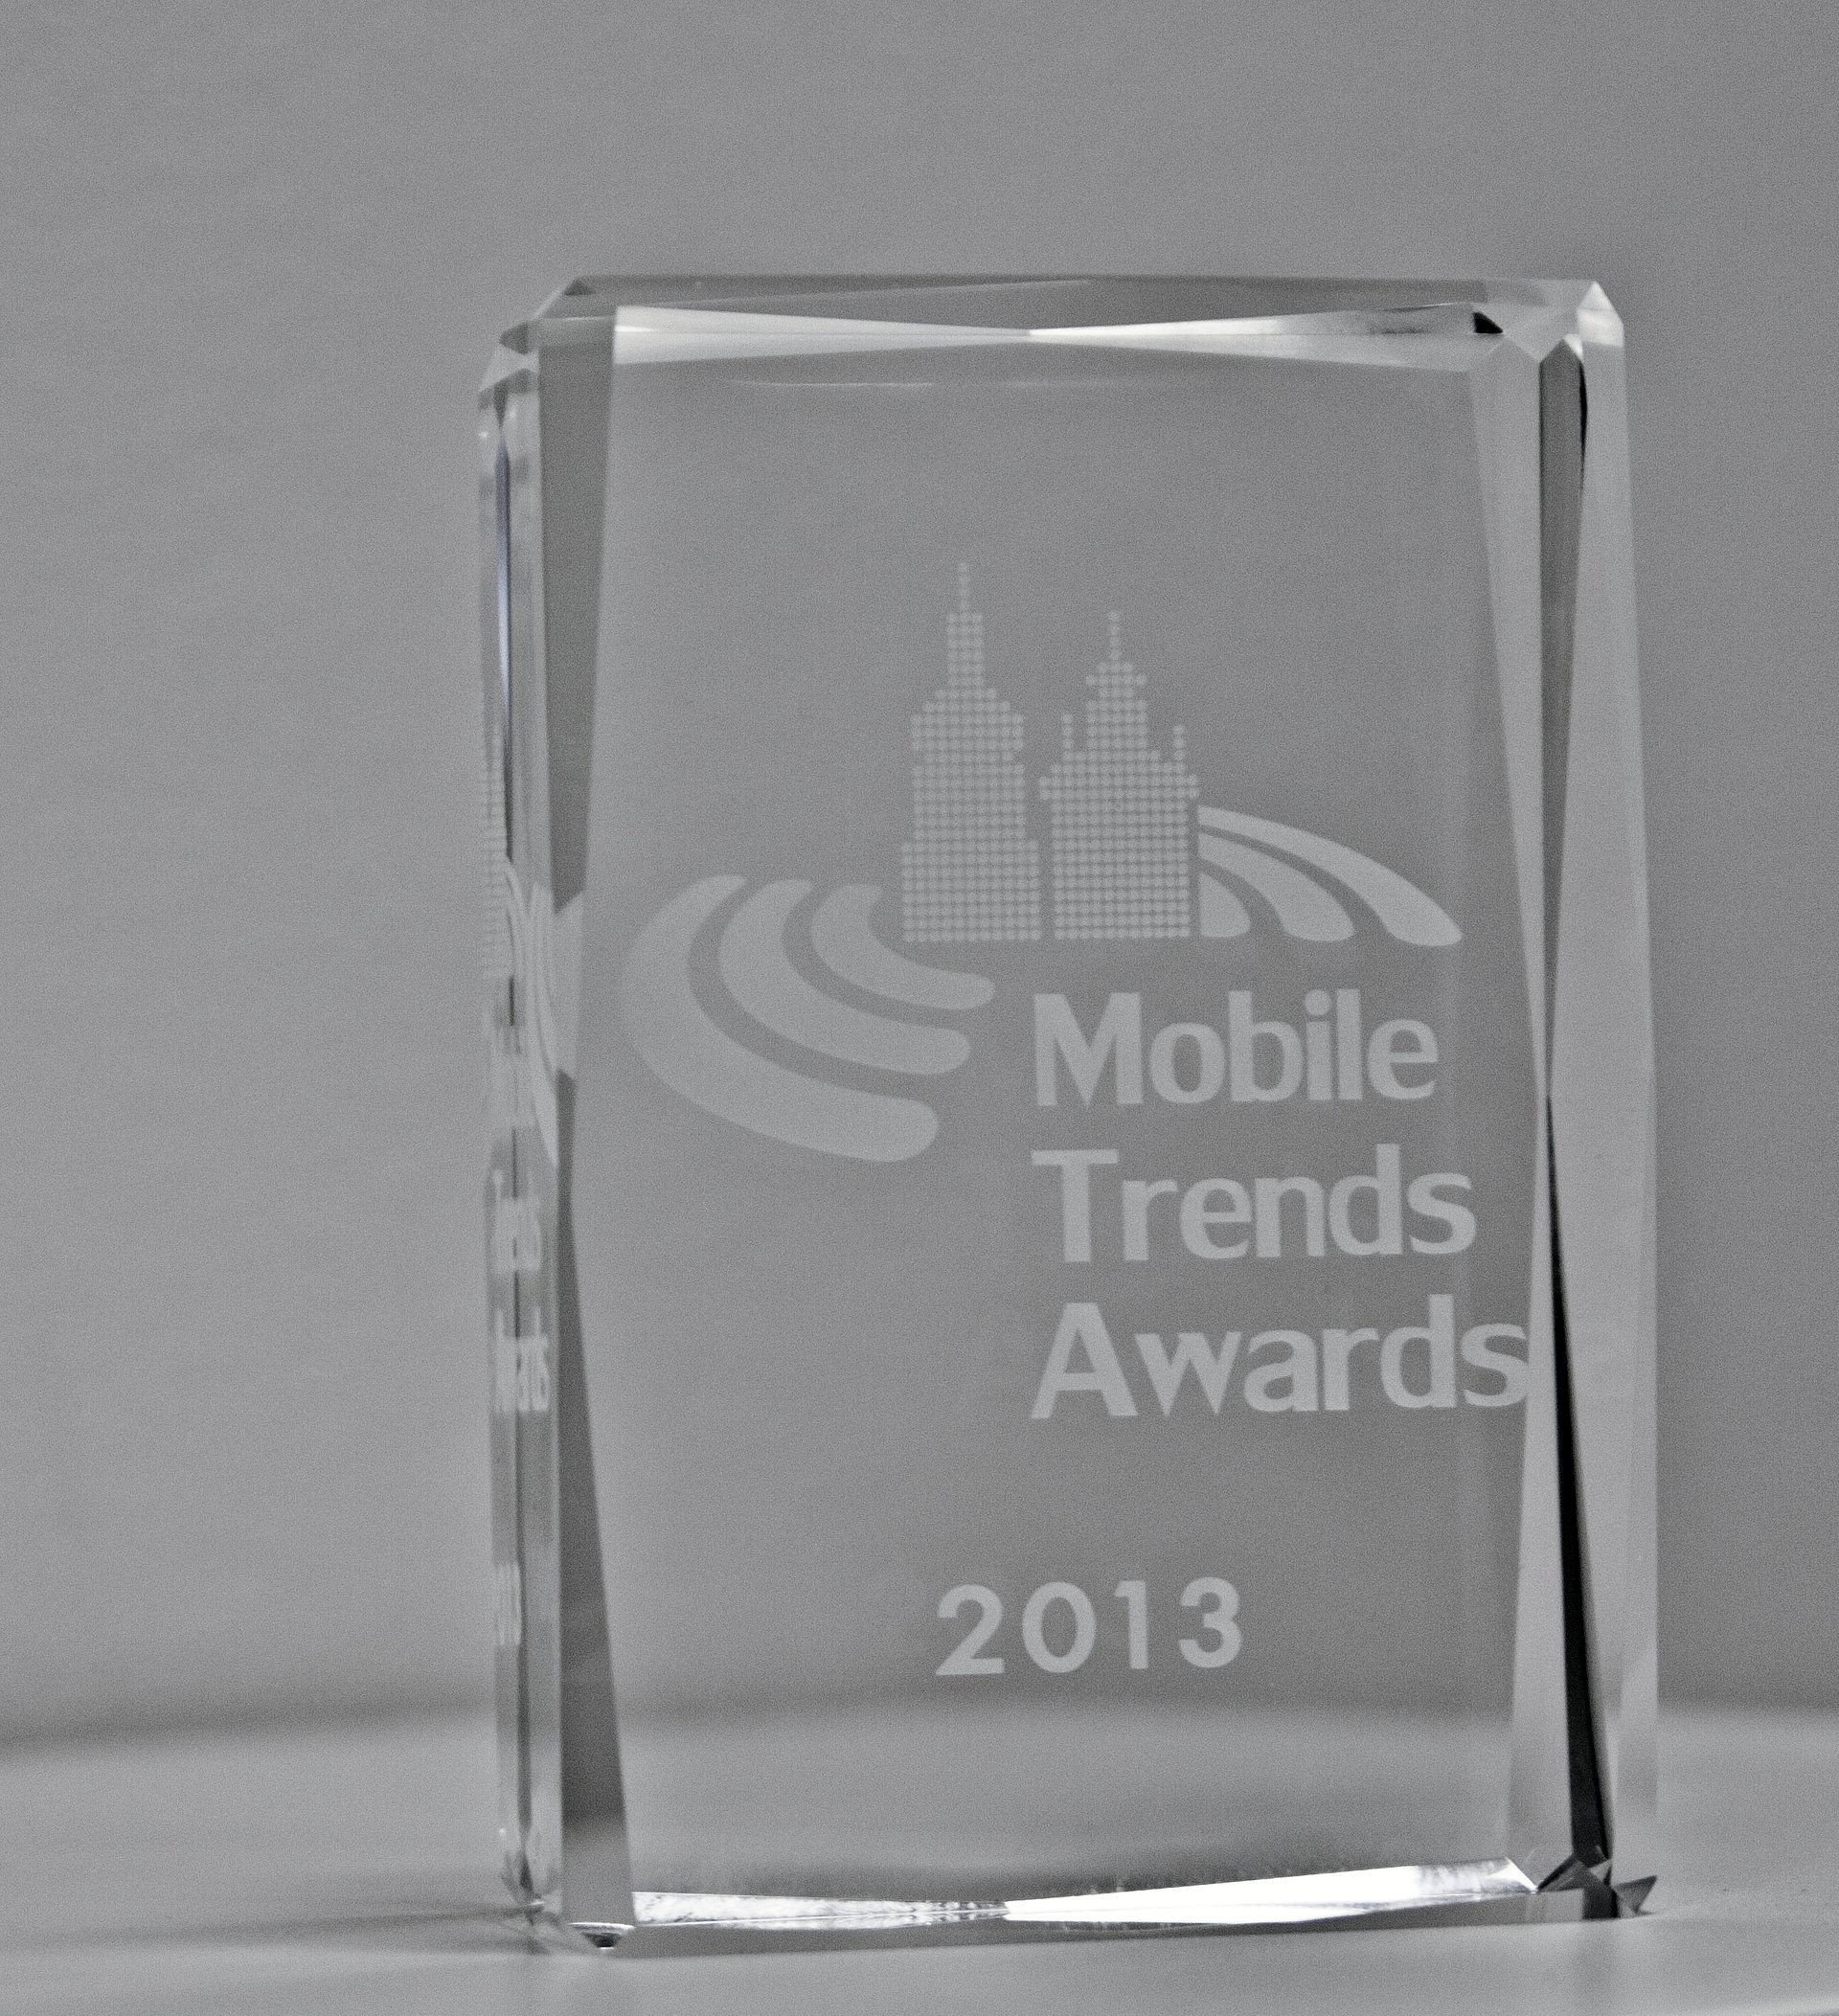 IKO nagrodzone w konkursie Mobile Trends Awards!